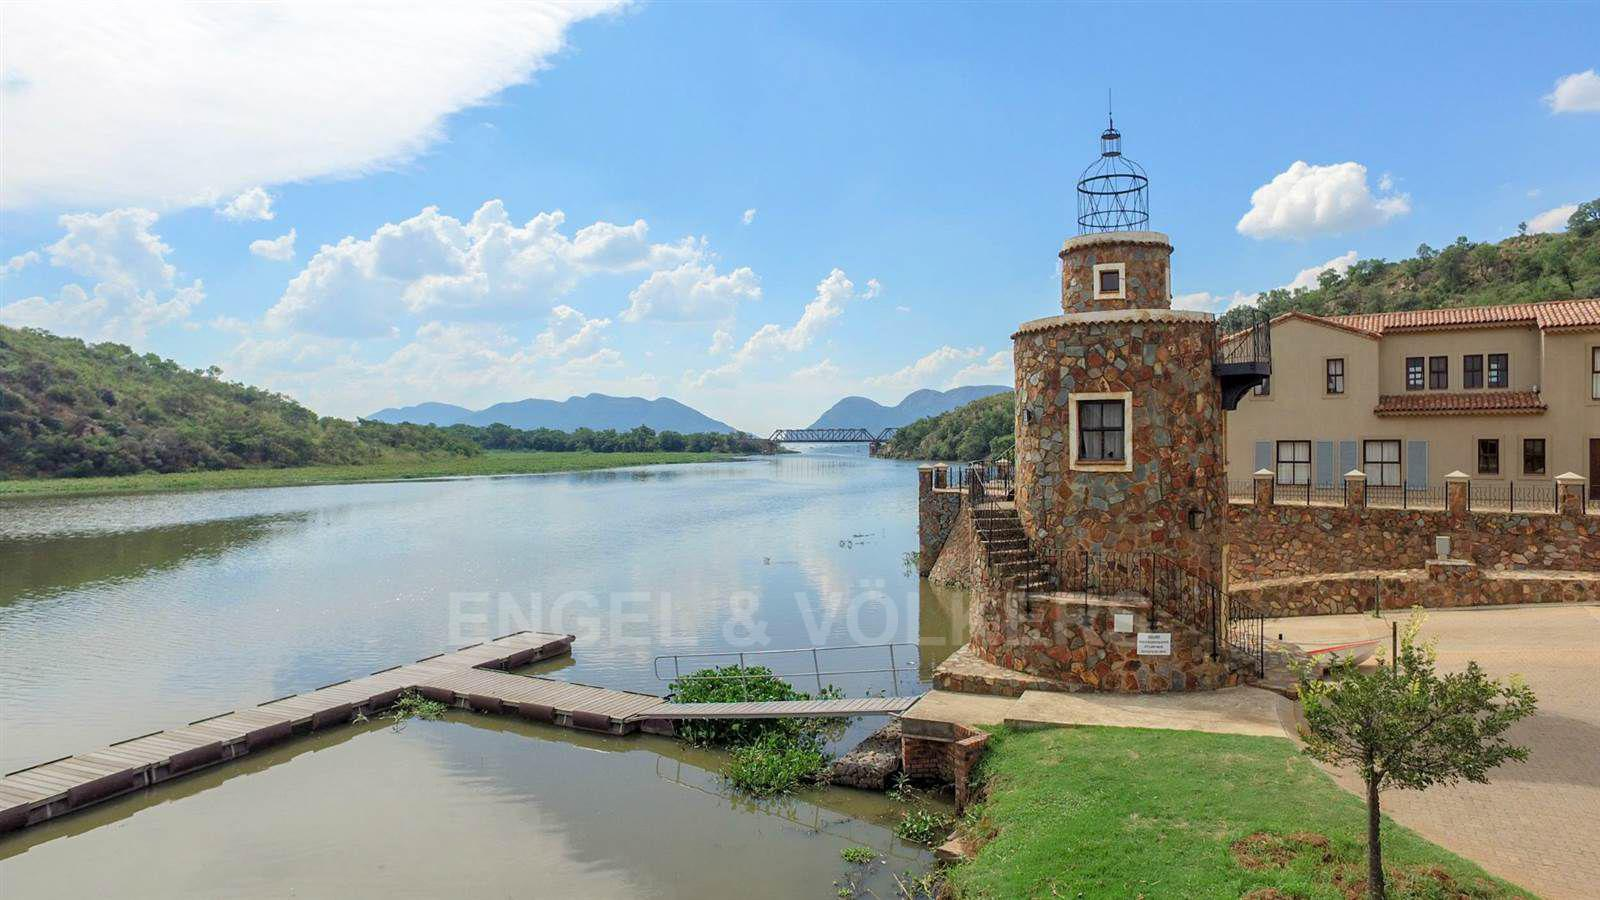 Land in Ville D' Afrique - View to the dam